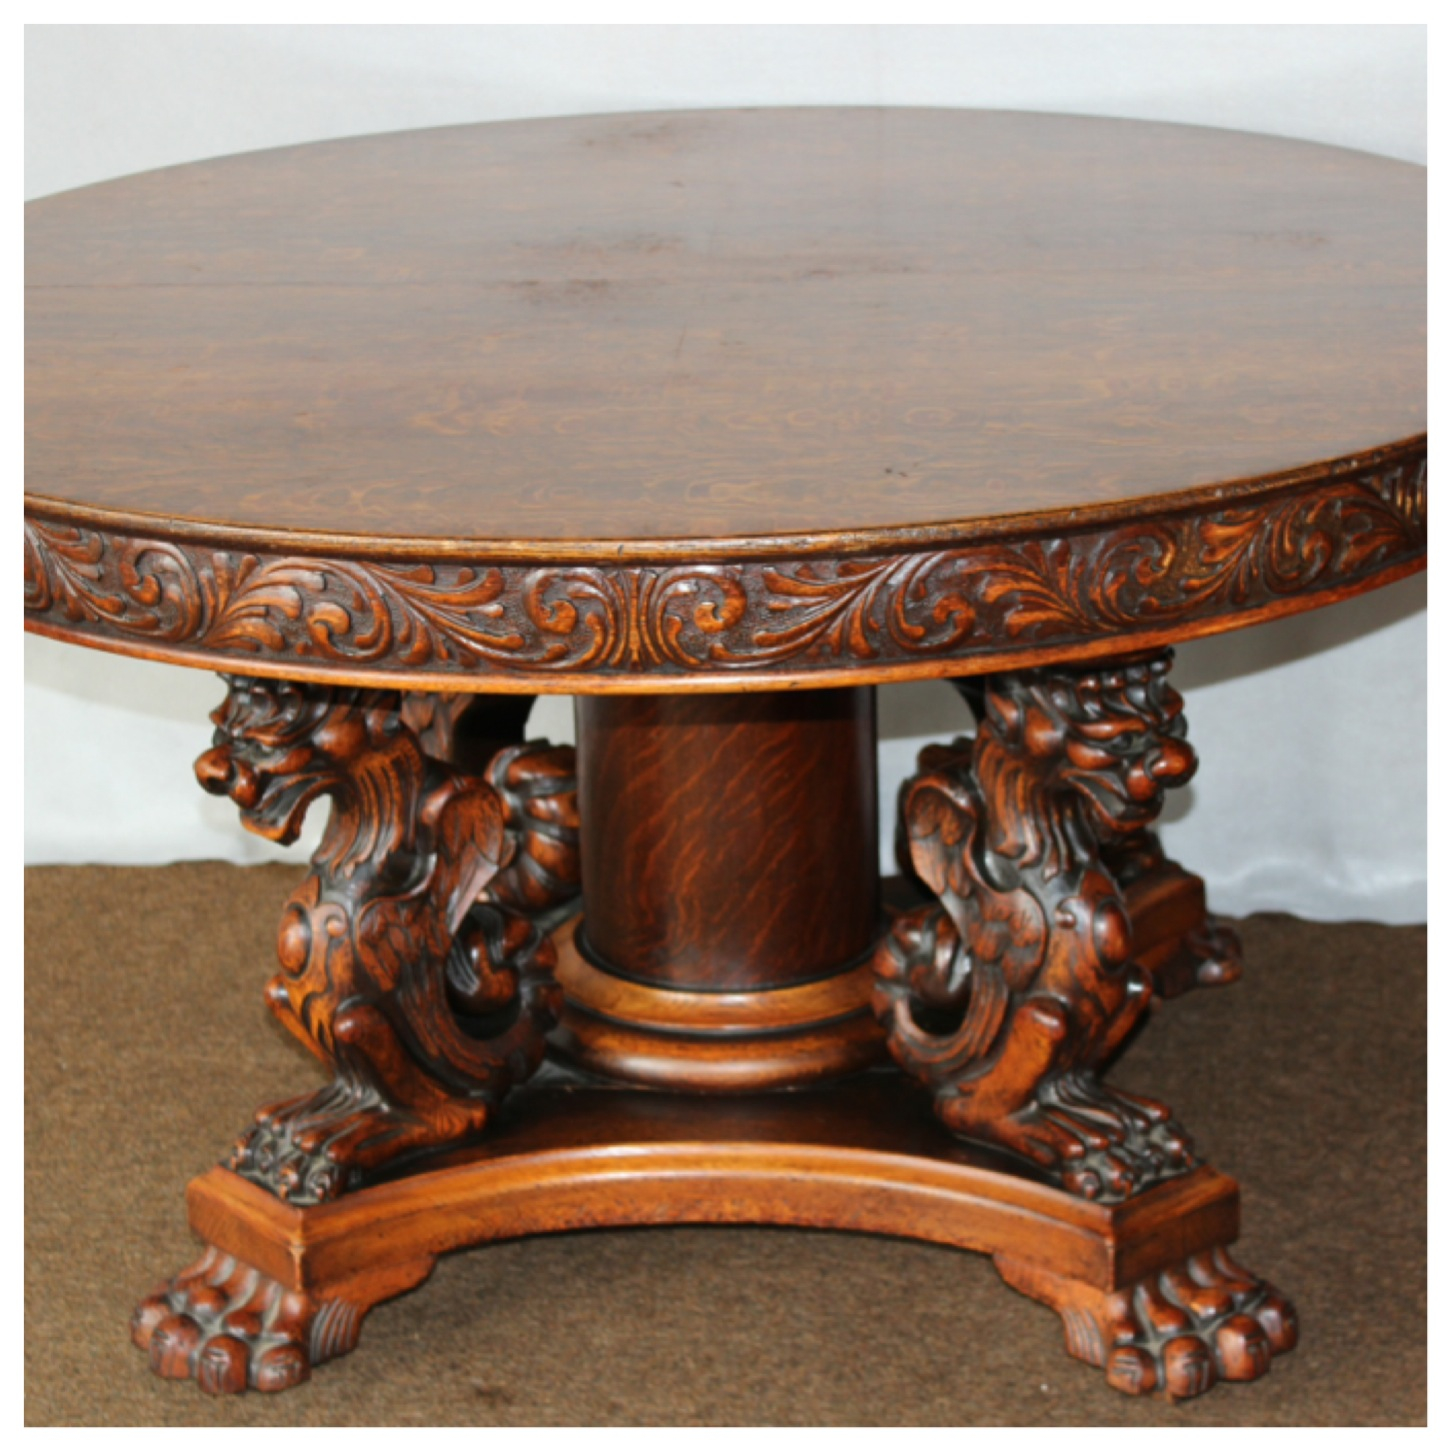 #F4218a Dining Table - Furniture Product Categories Bogart, Bremmer & Bradley Antiques